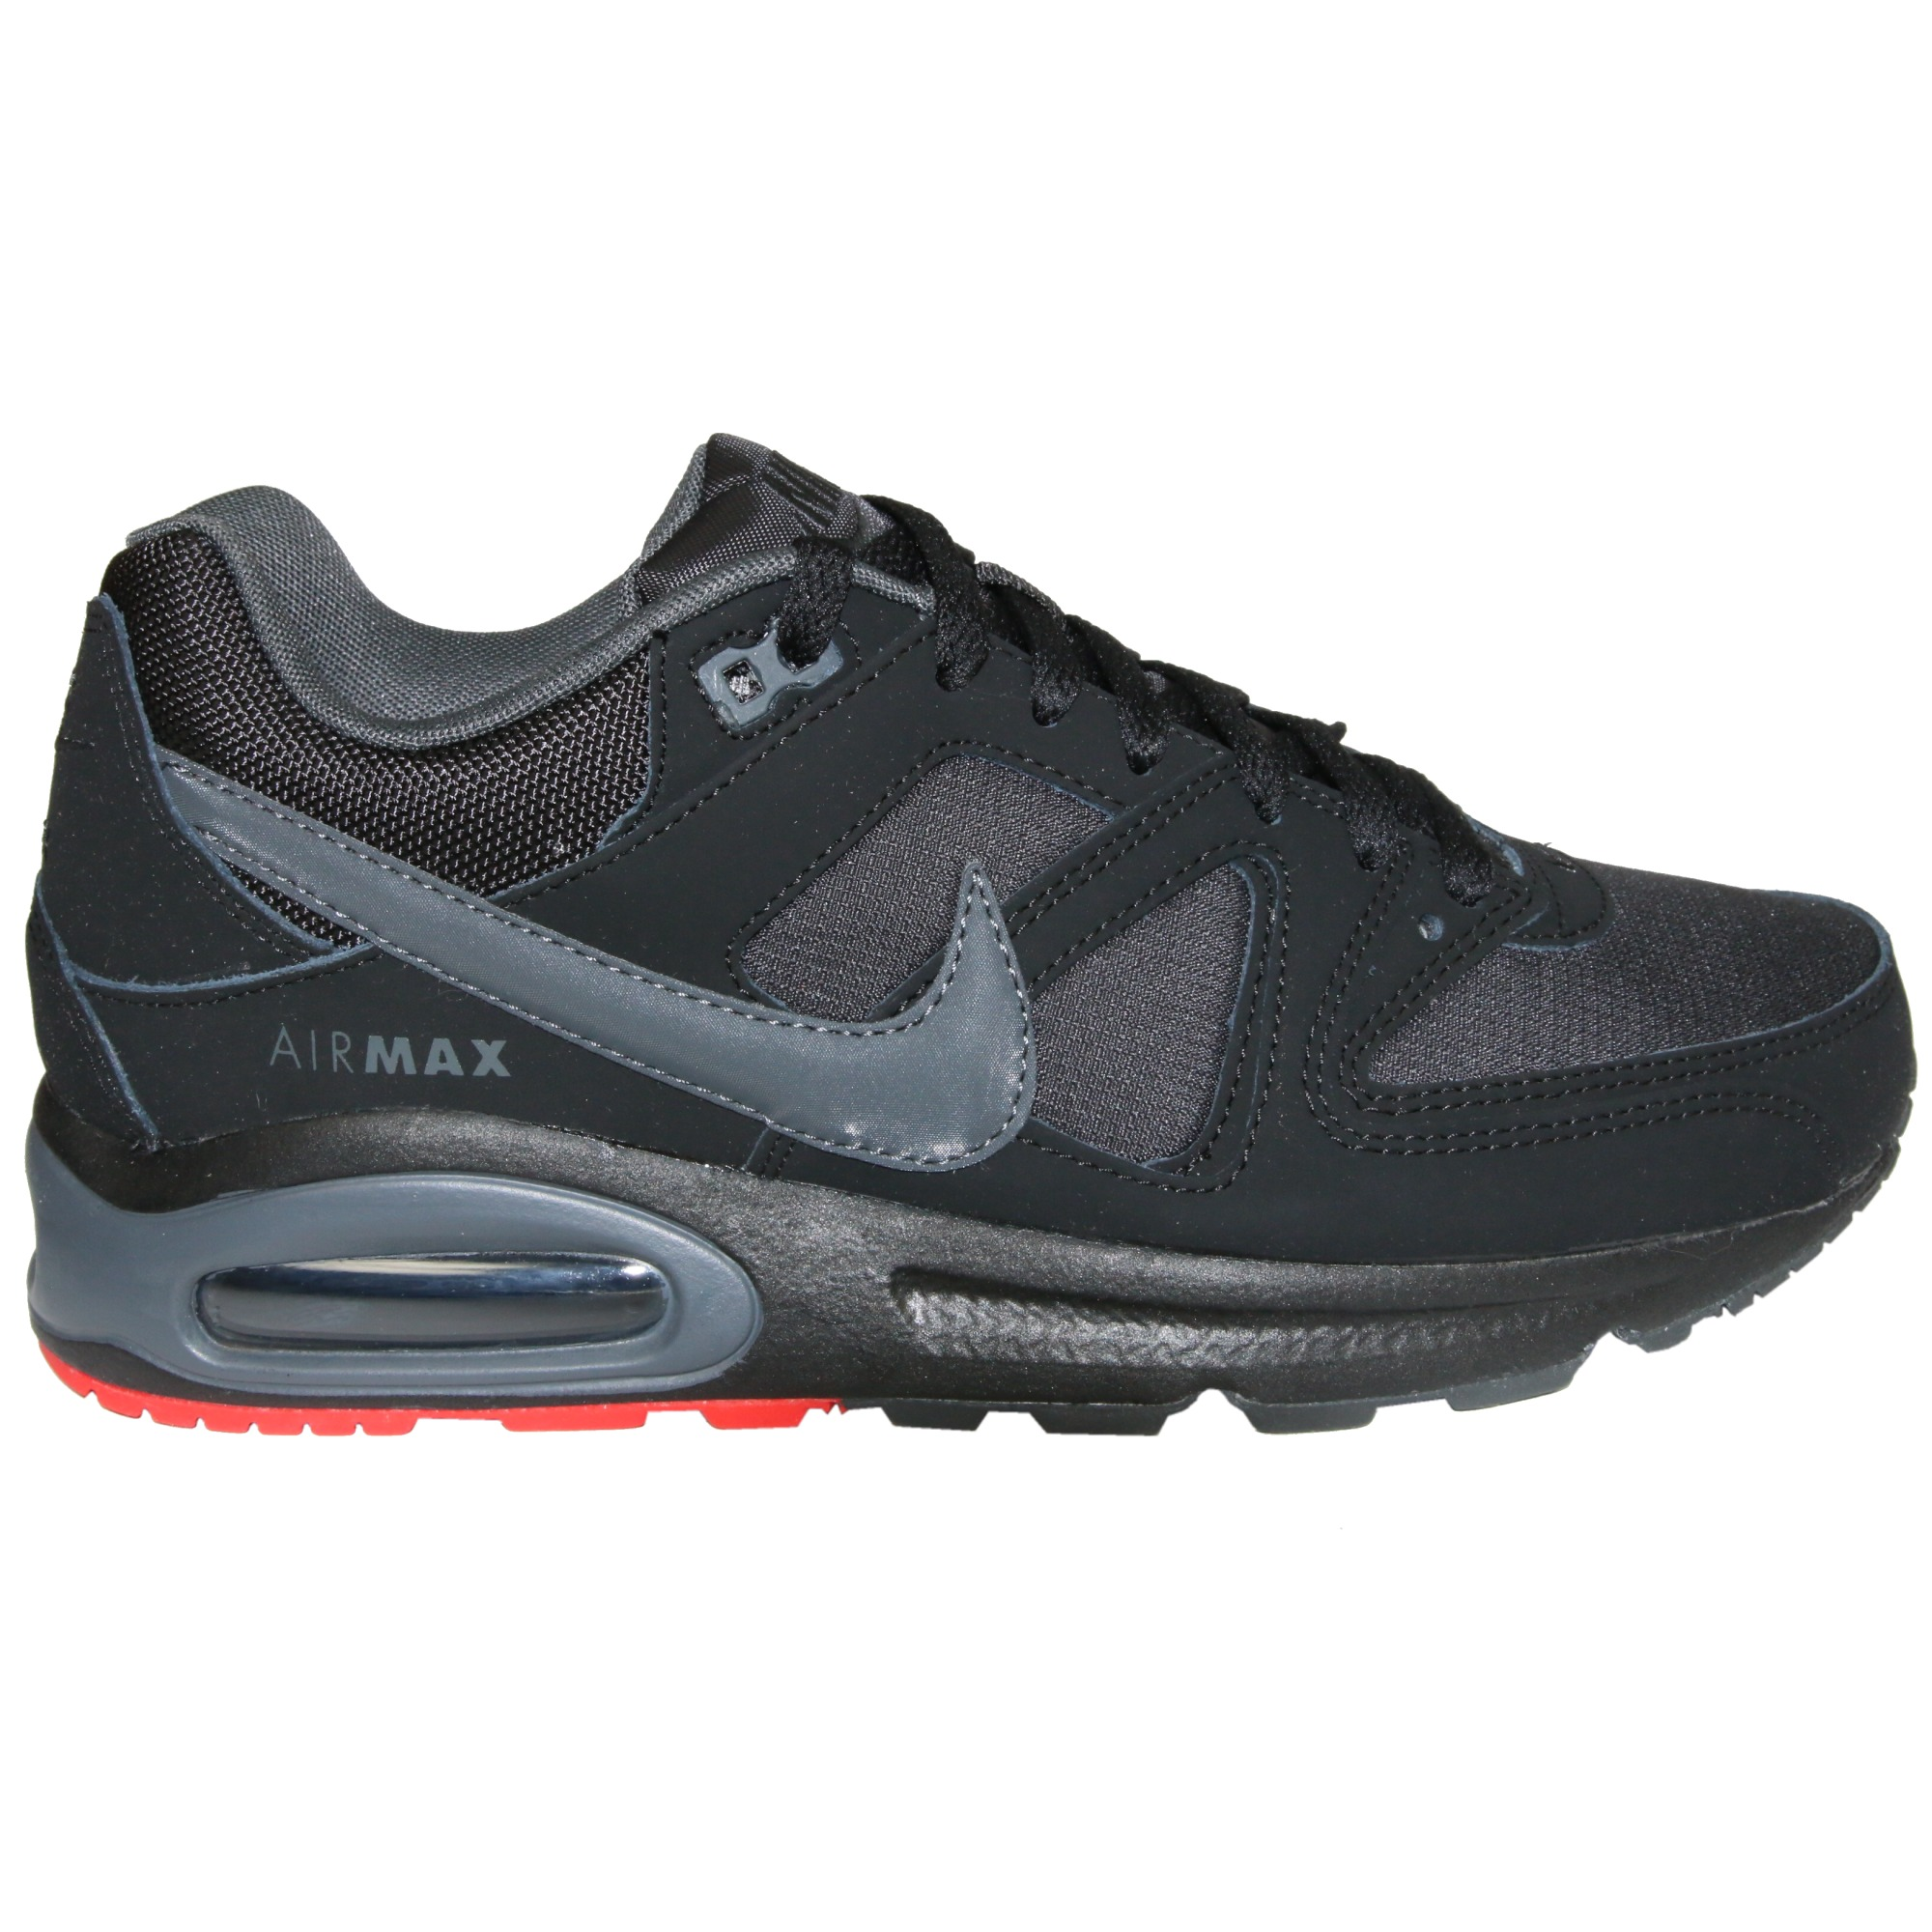 nike air max command schuhe freizeitschuhe sneaker herren ebay. Black Bedroom Furniture Sets. Home Design Ideas